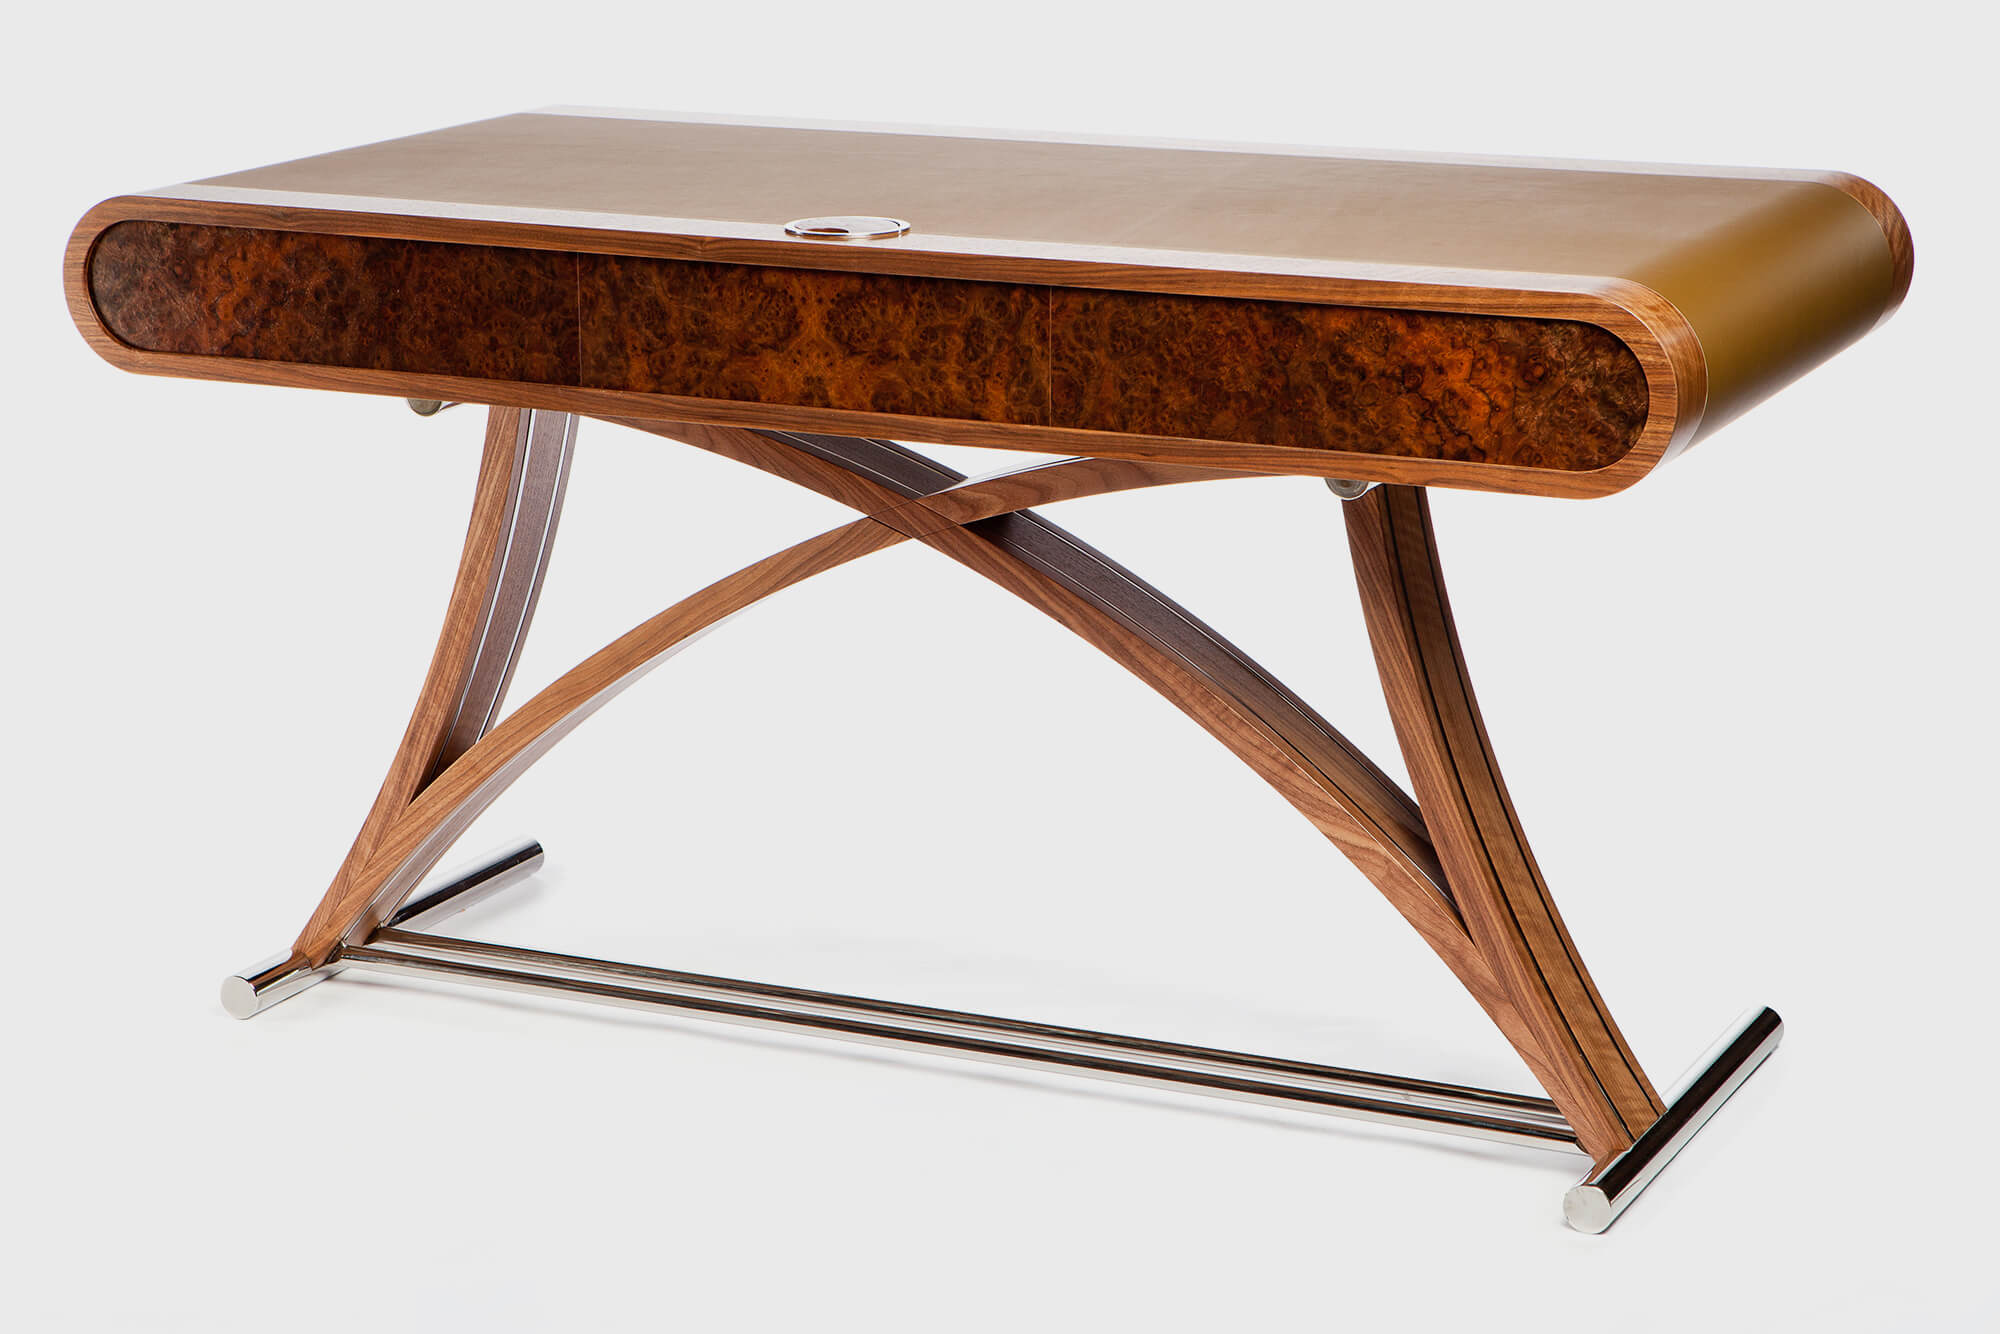 Burr veneer on elegant leather writing desk created to bespoke sizes